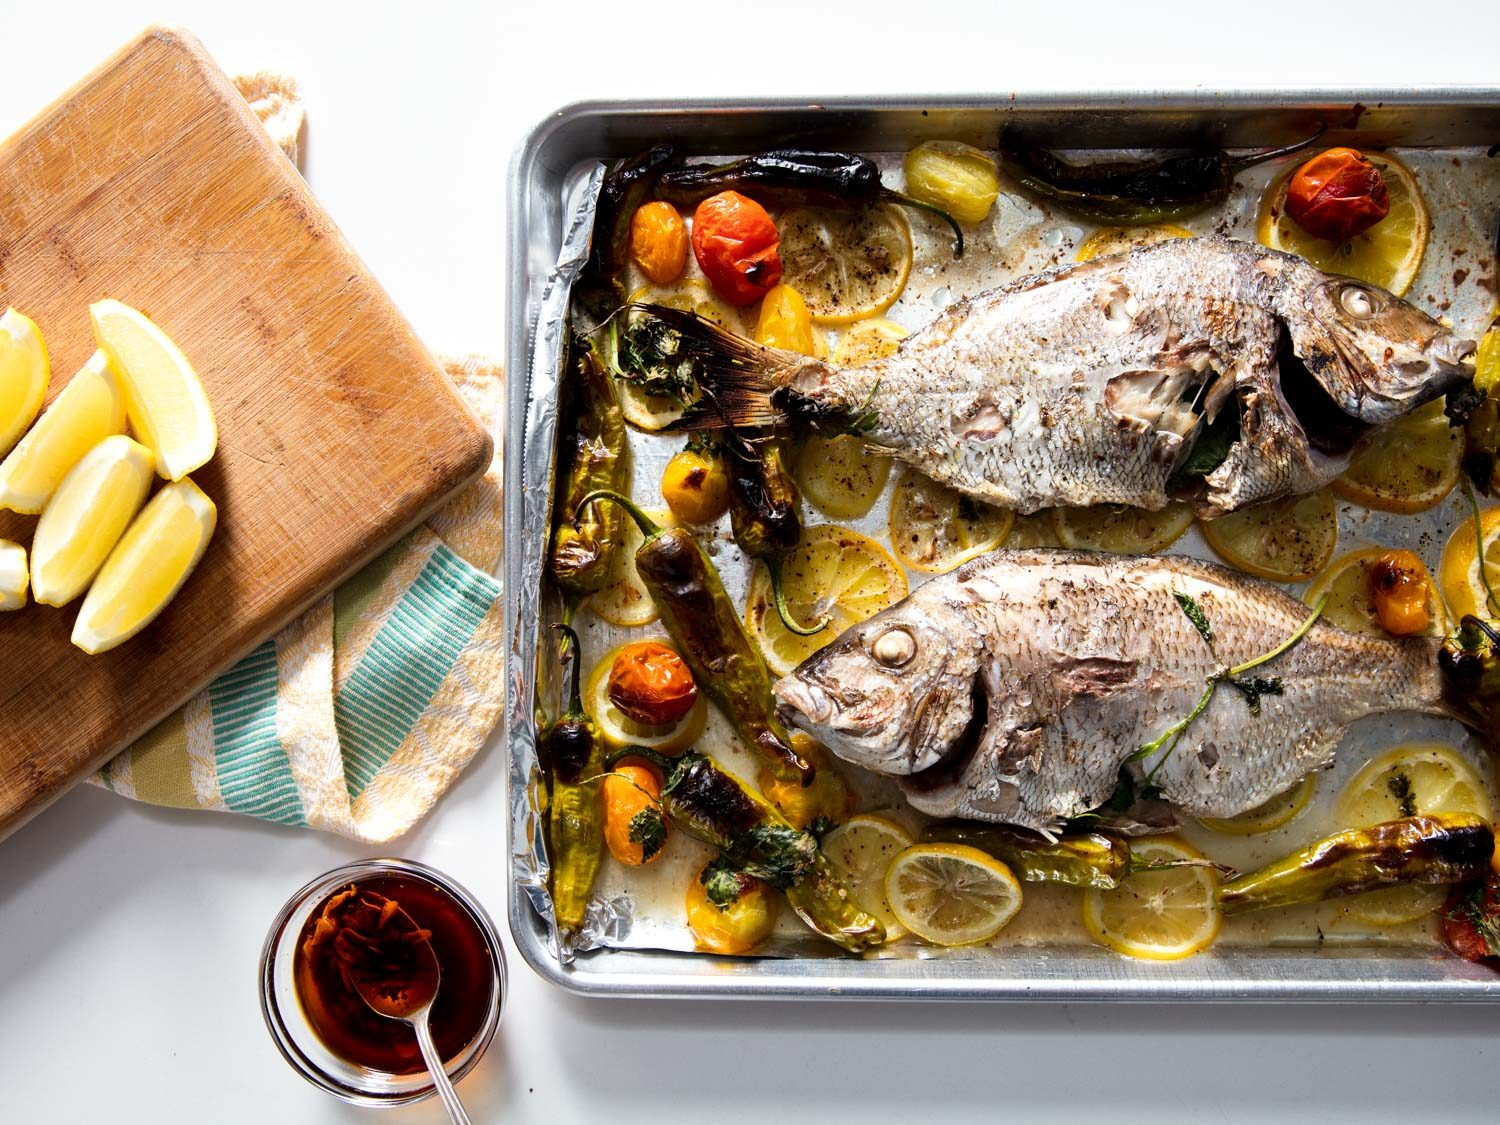 Broiled Whole Porgy With Blistered Shishito and Tomato